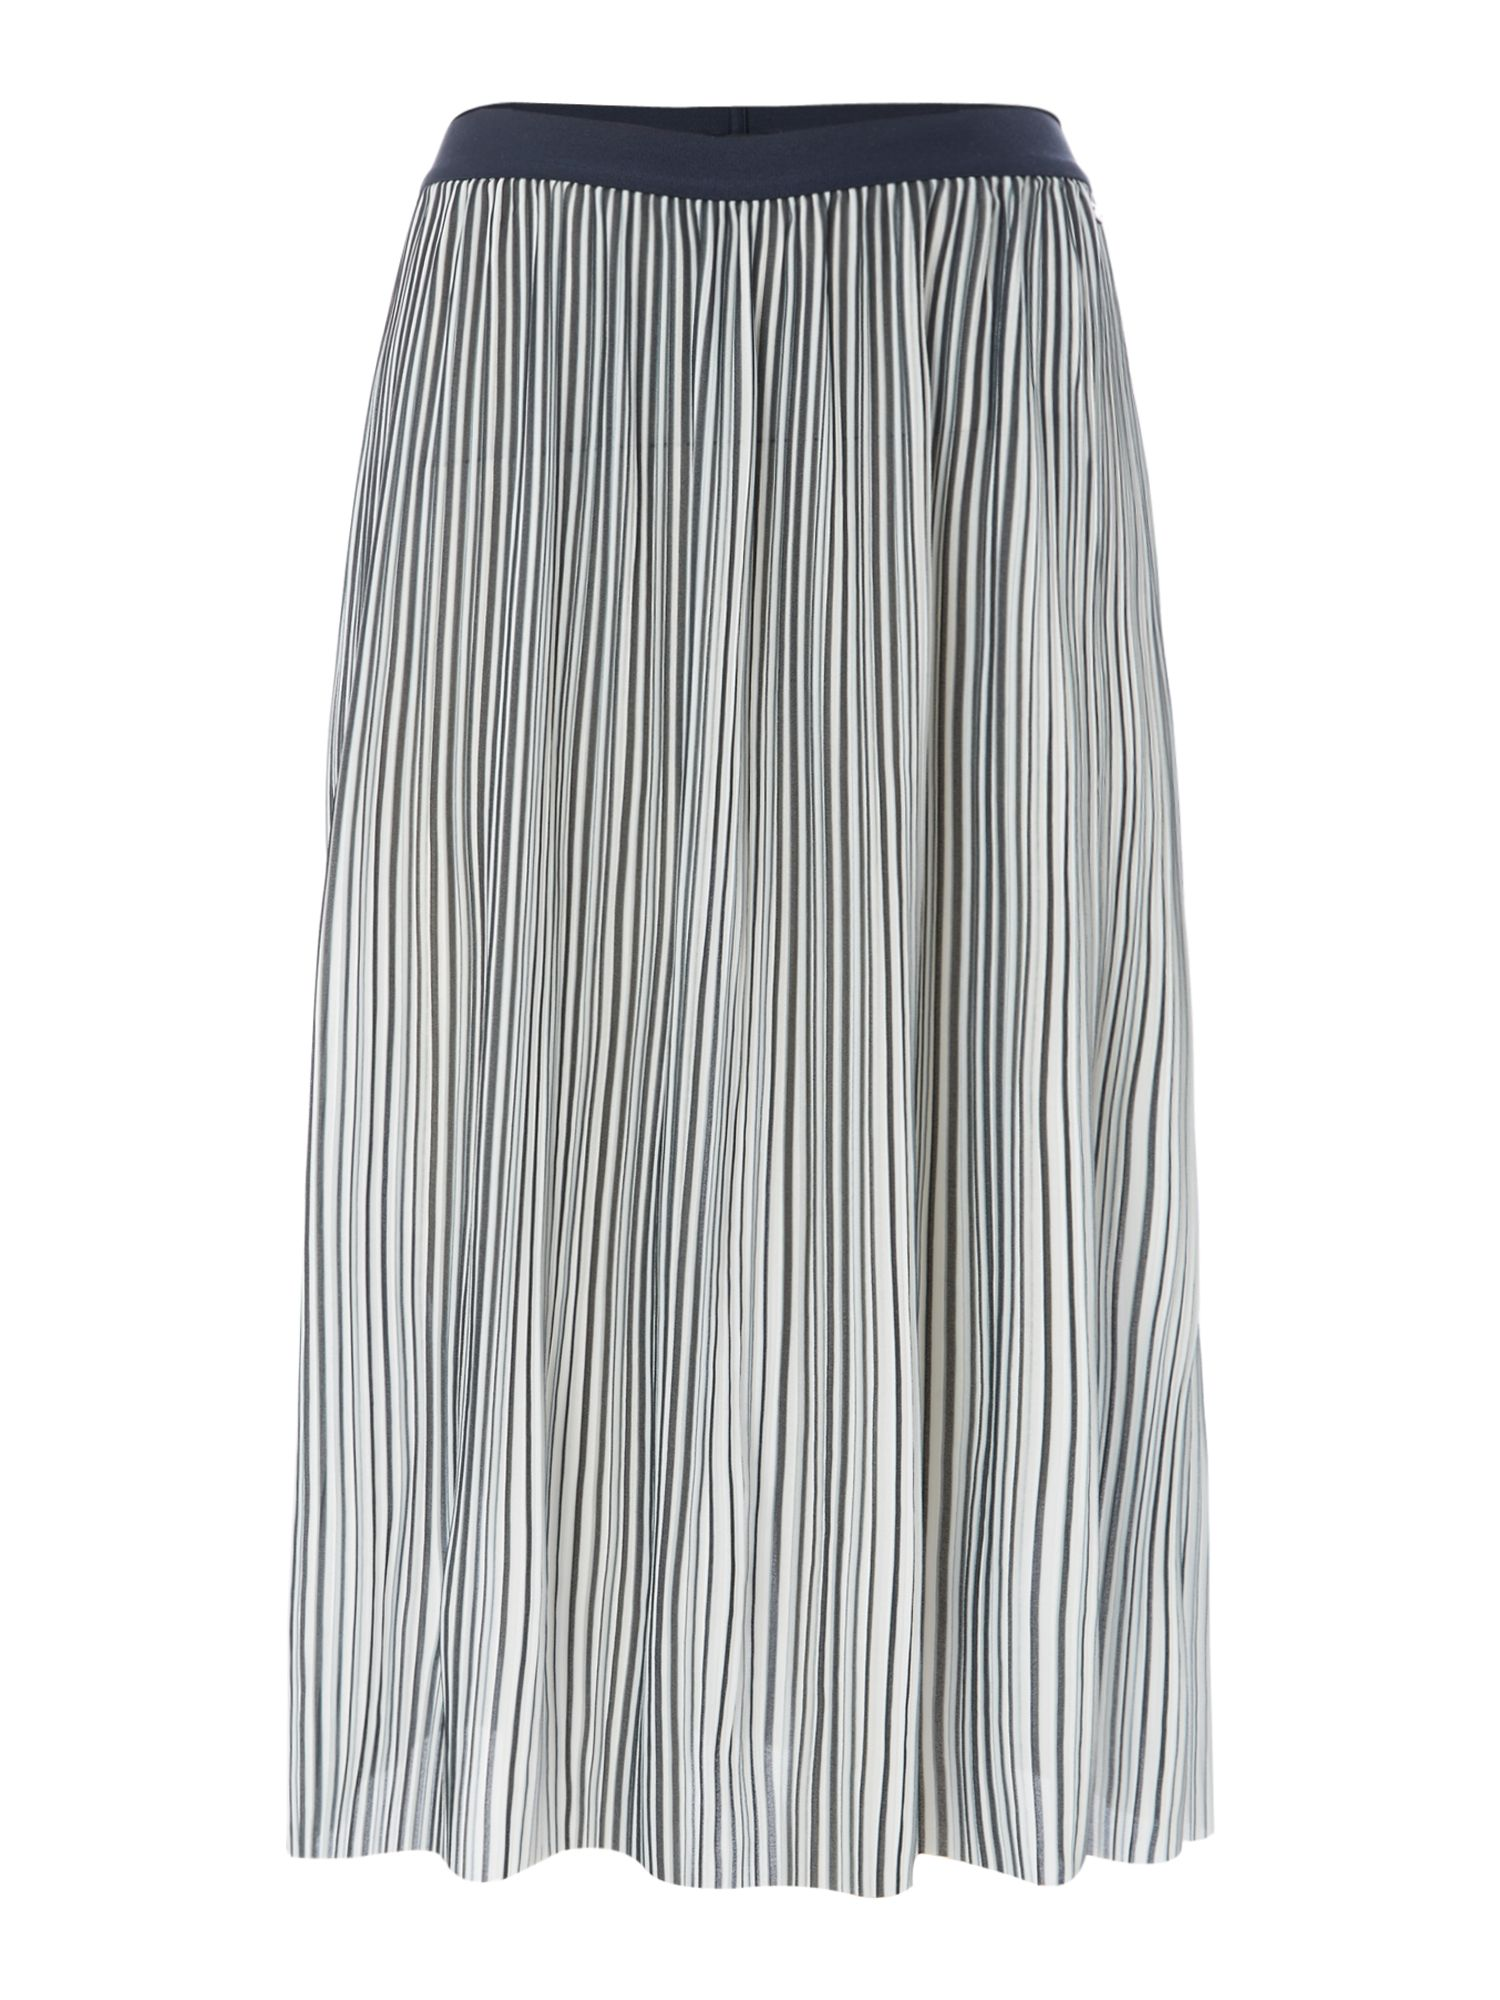 Armani Exchange Midi Skirt in Stripe, Multi-Coloured